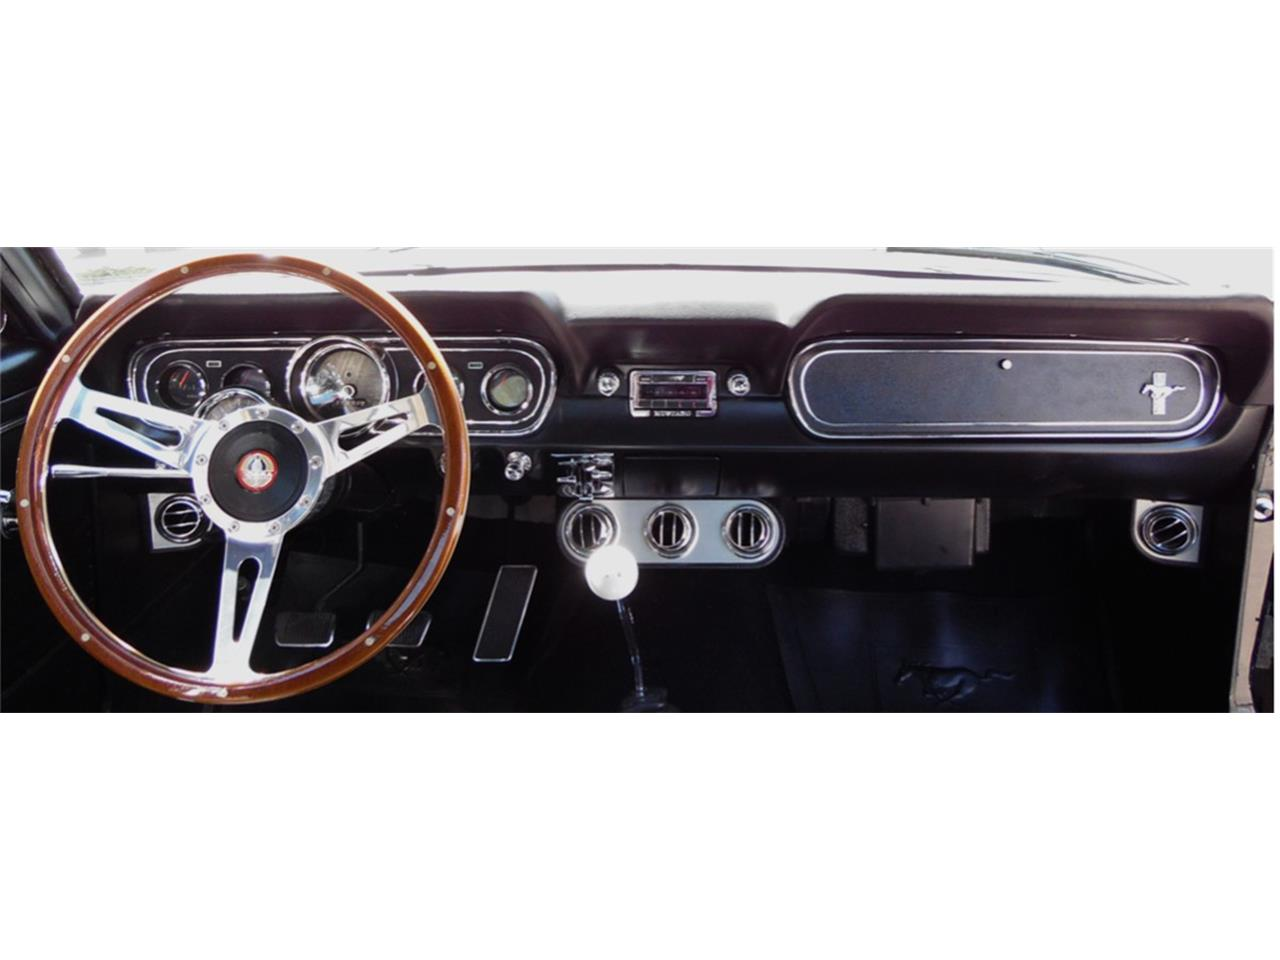 Large Picture of Classic 1966 Mustang located in Redlands California - $57,995.00 - LD2L